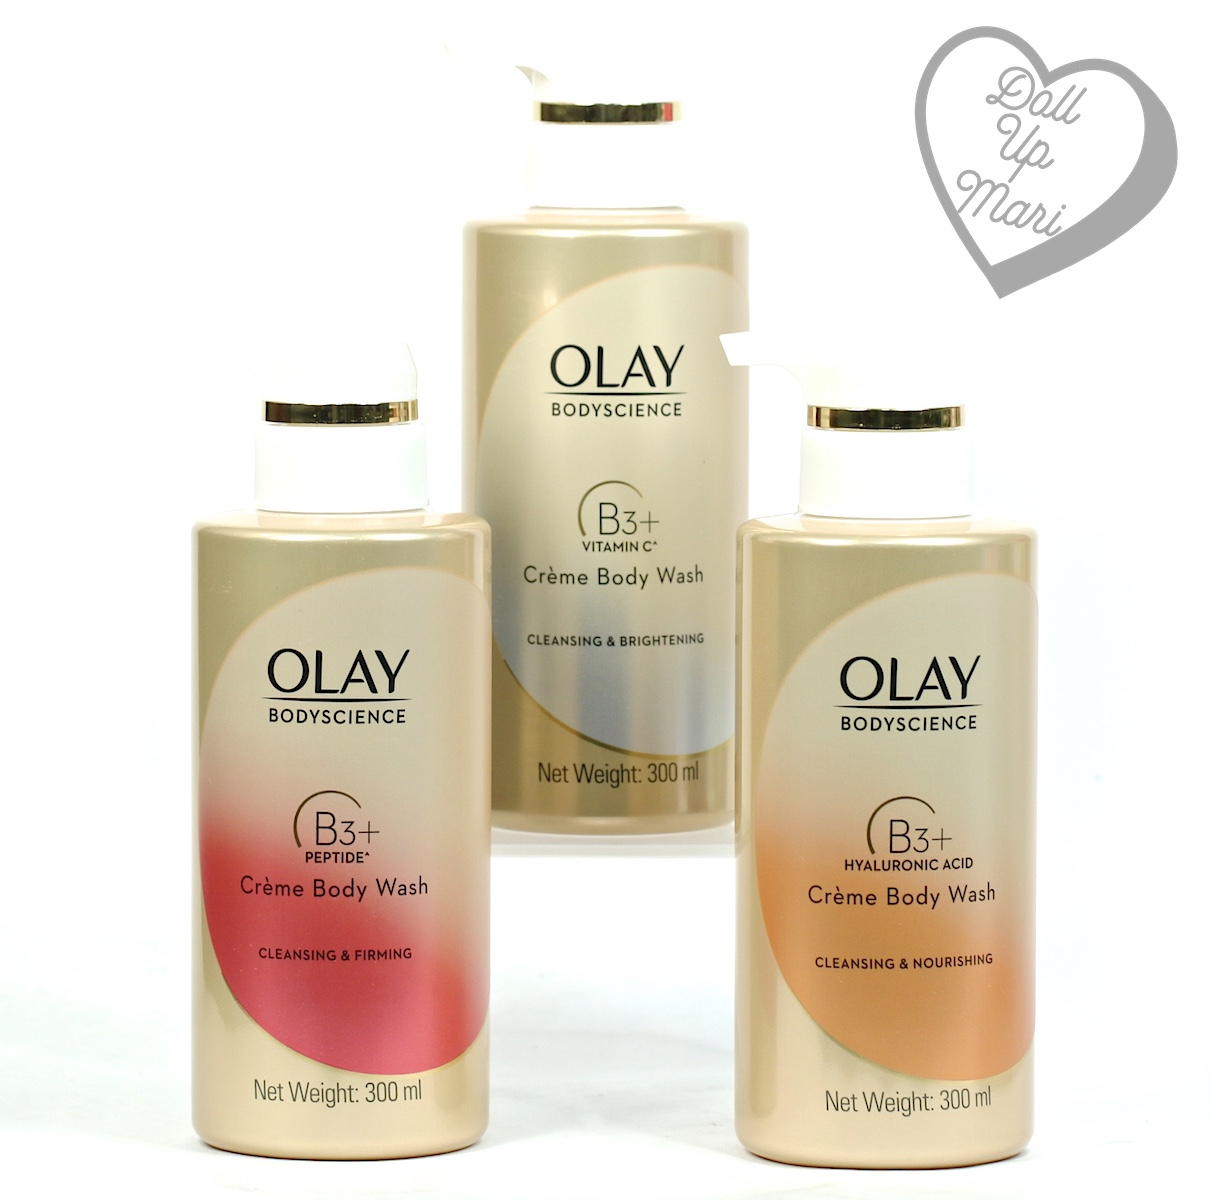 3 variants of Olay BodyScience Crème Body Wash side by side